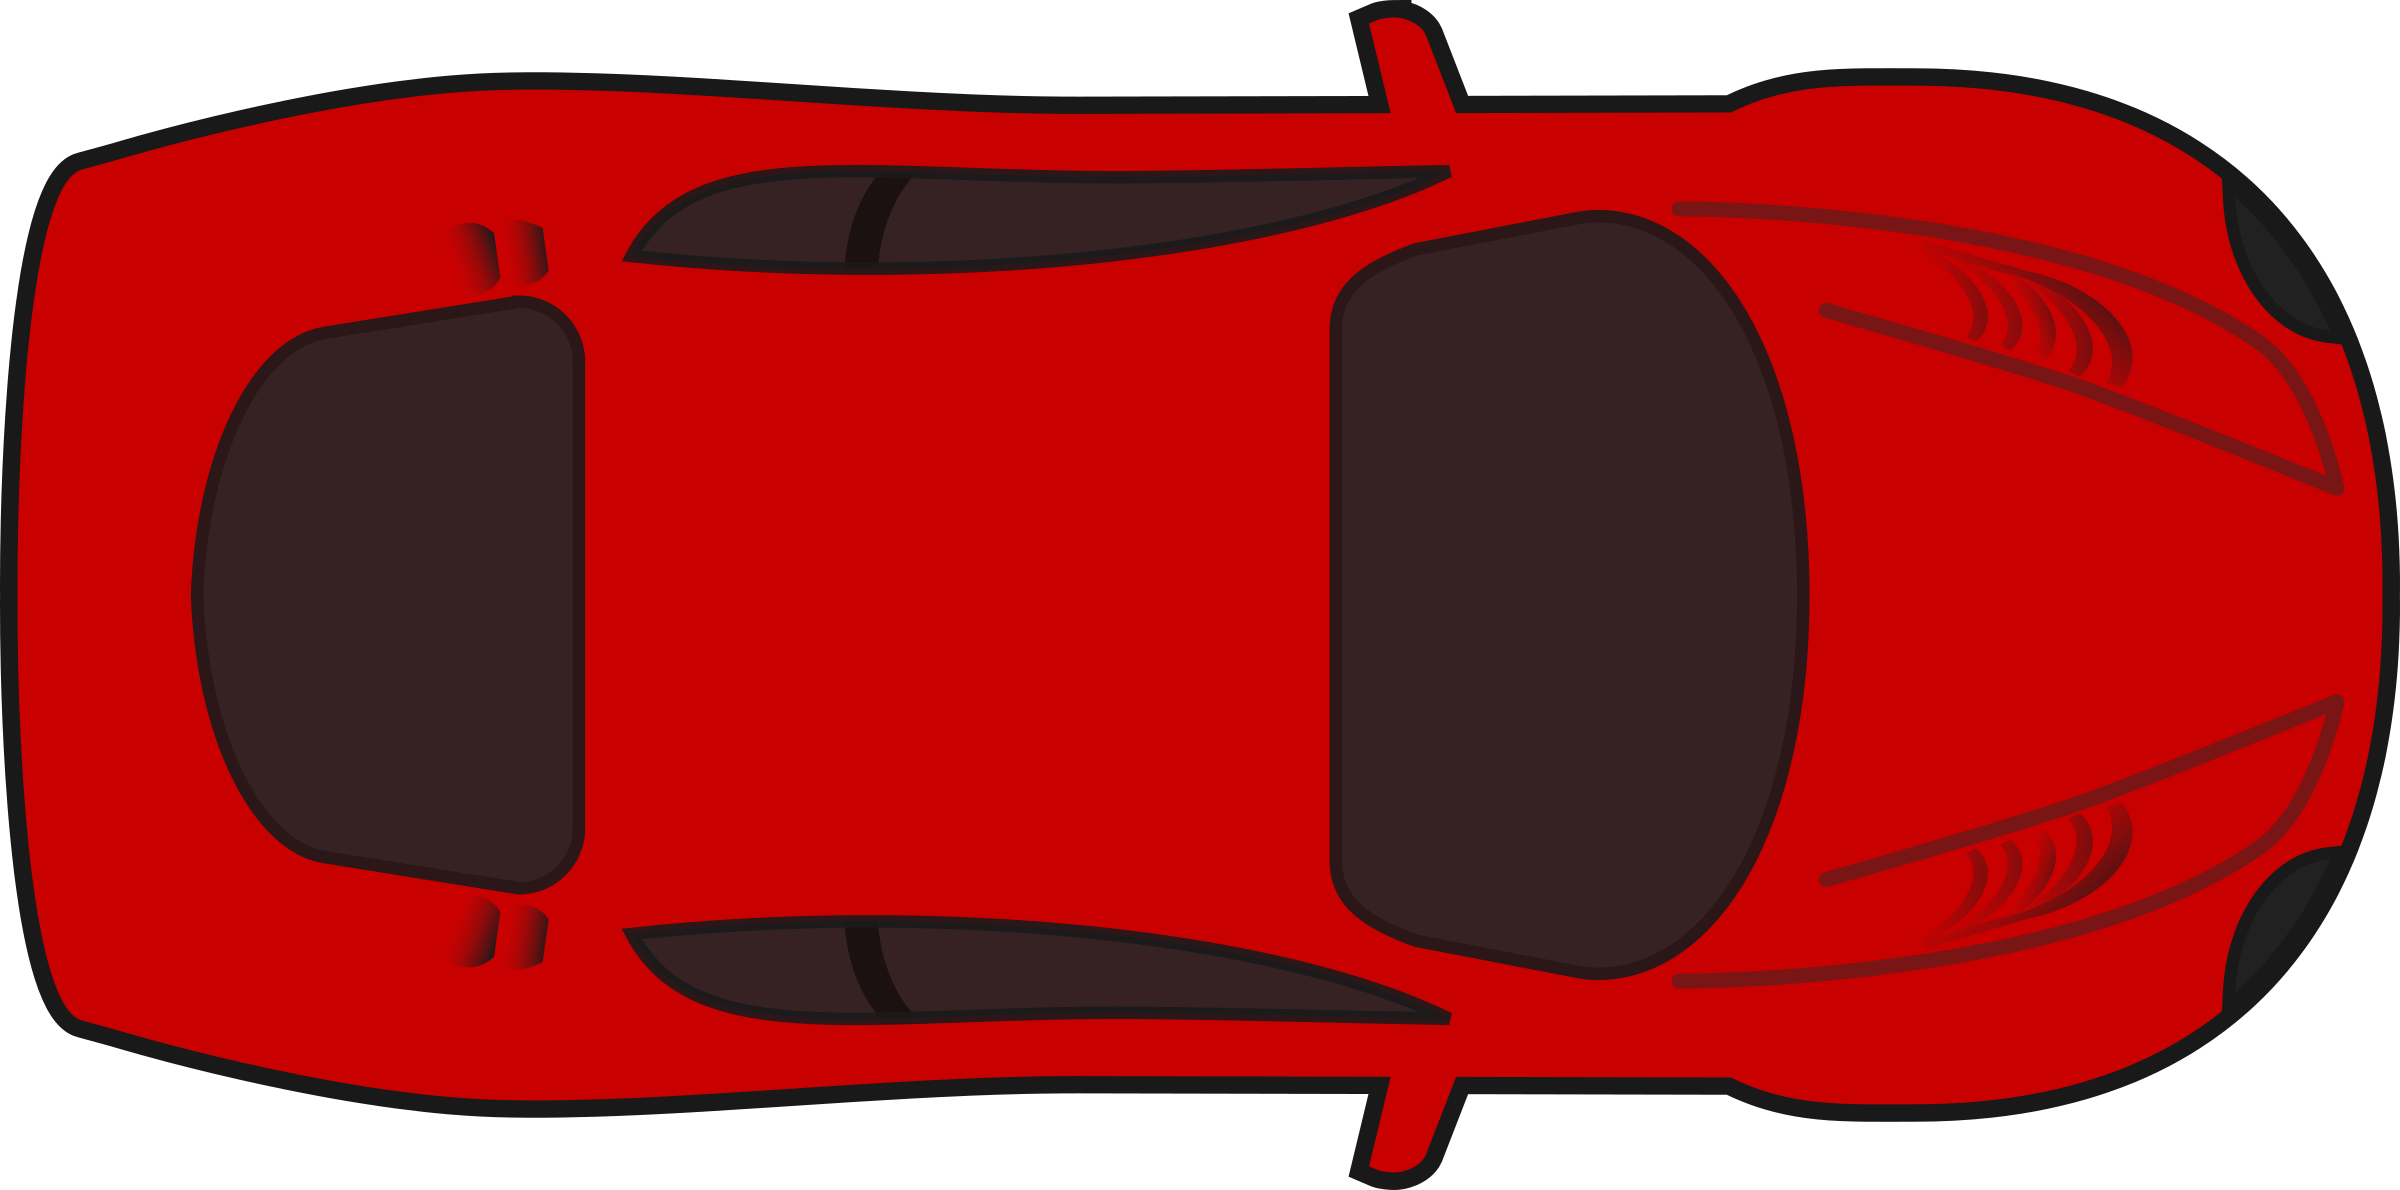 Car clipart images svg transparent Clipart - Red racing car top view svg transparent